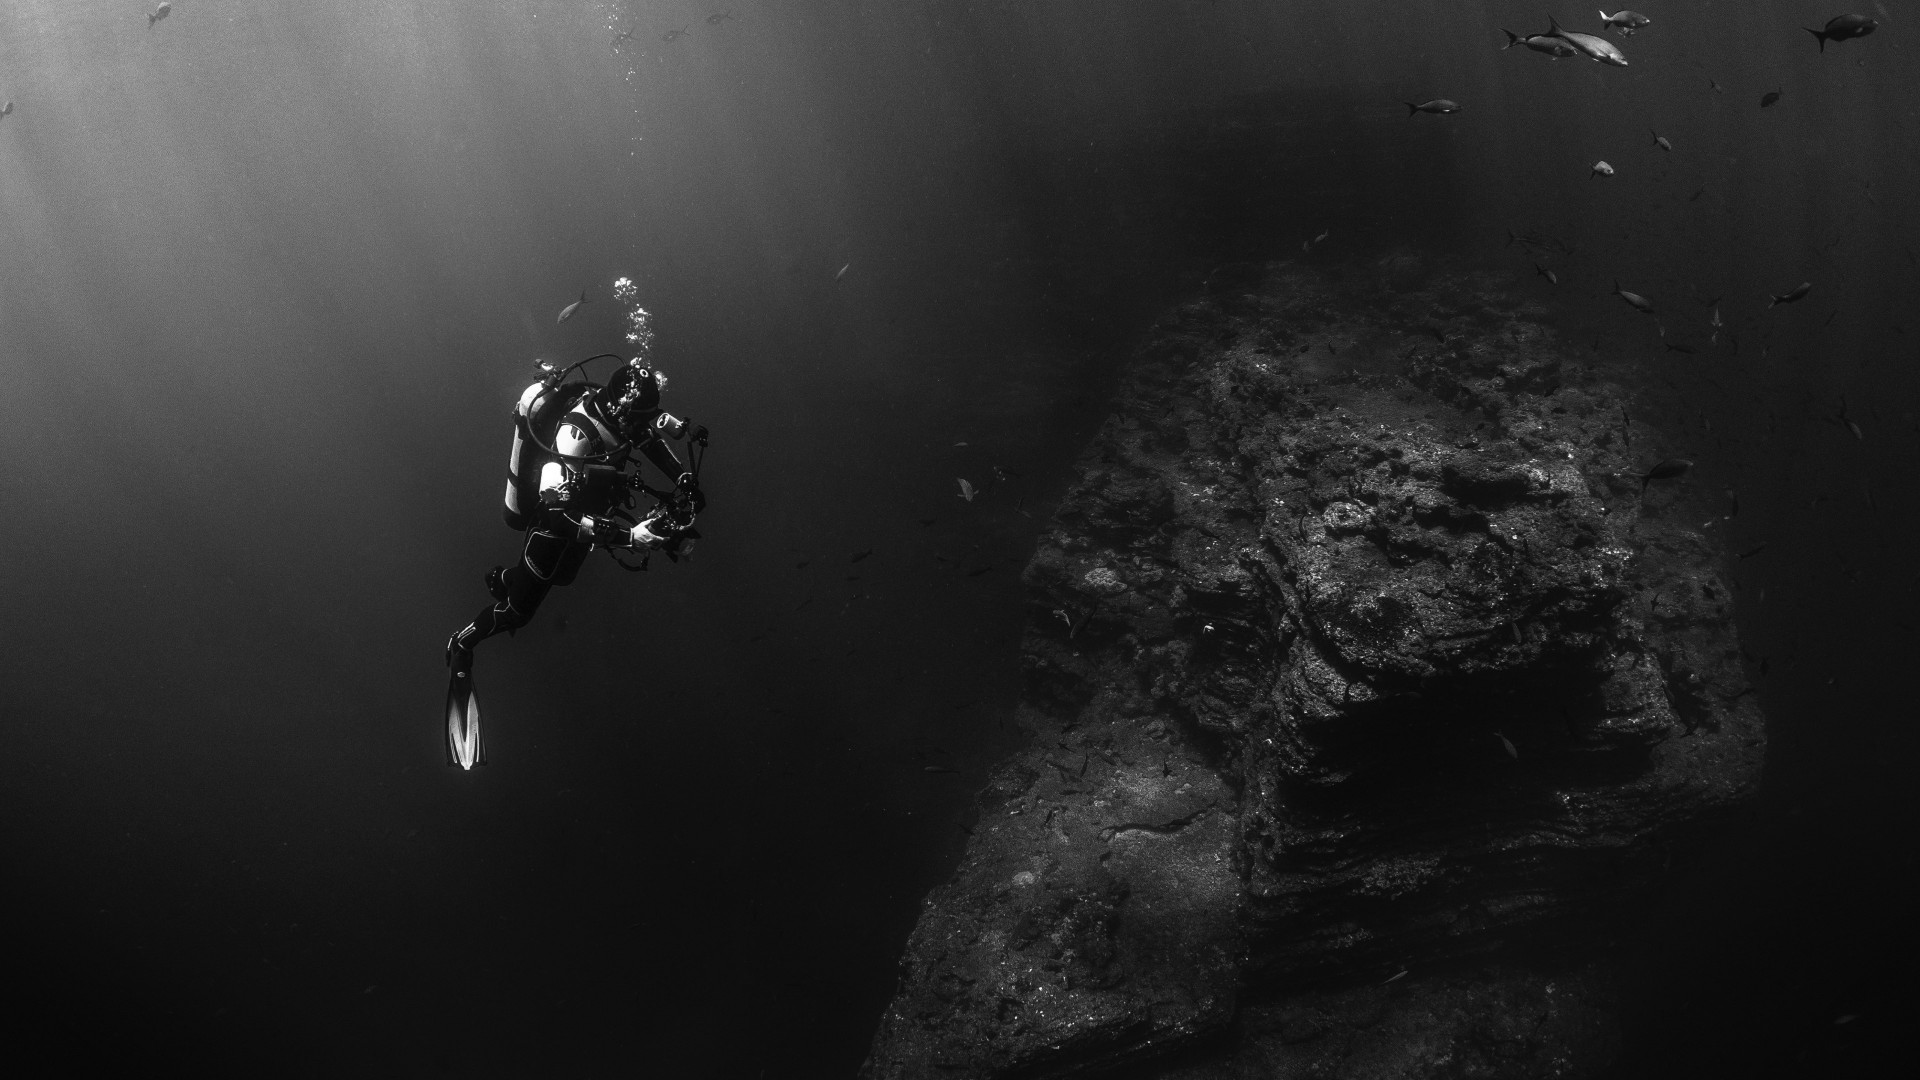 Diver in the Pacific Ocean wallpaper 1920x1080